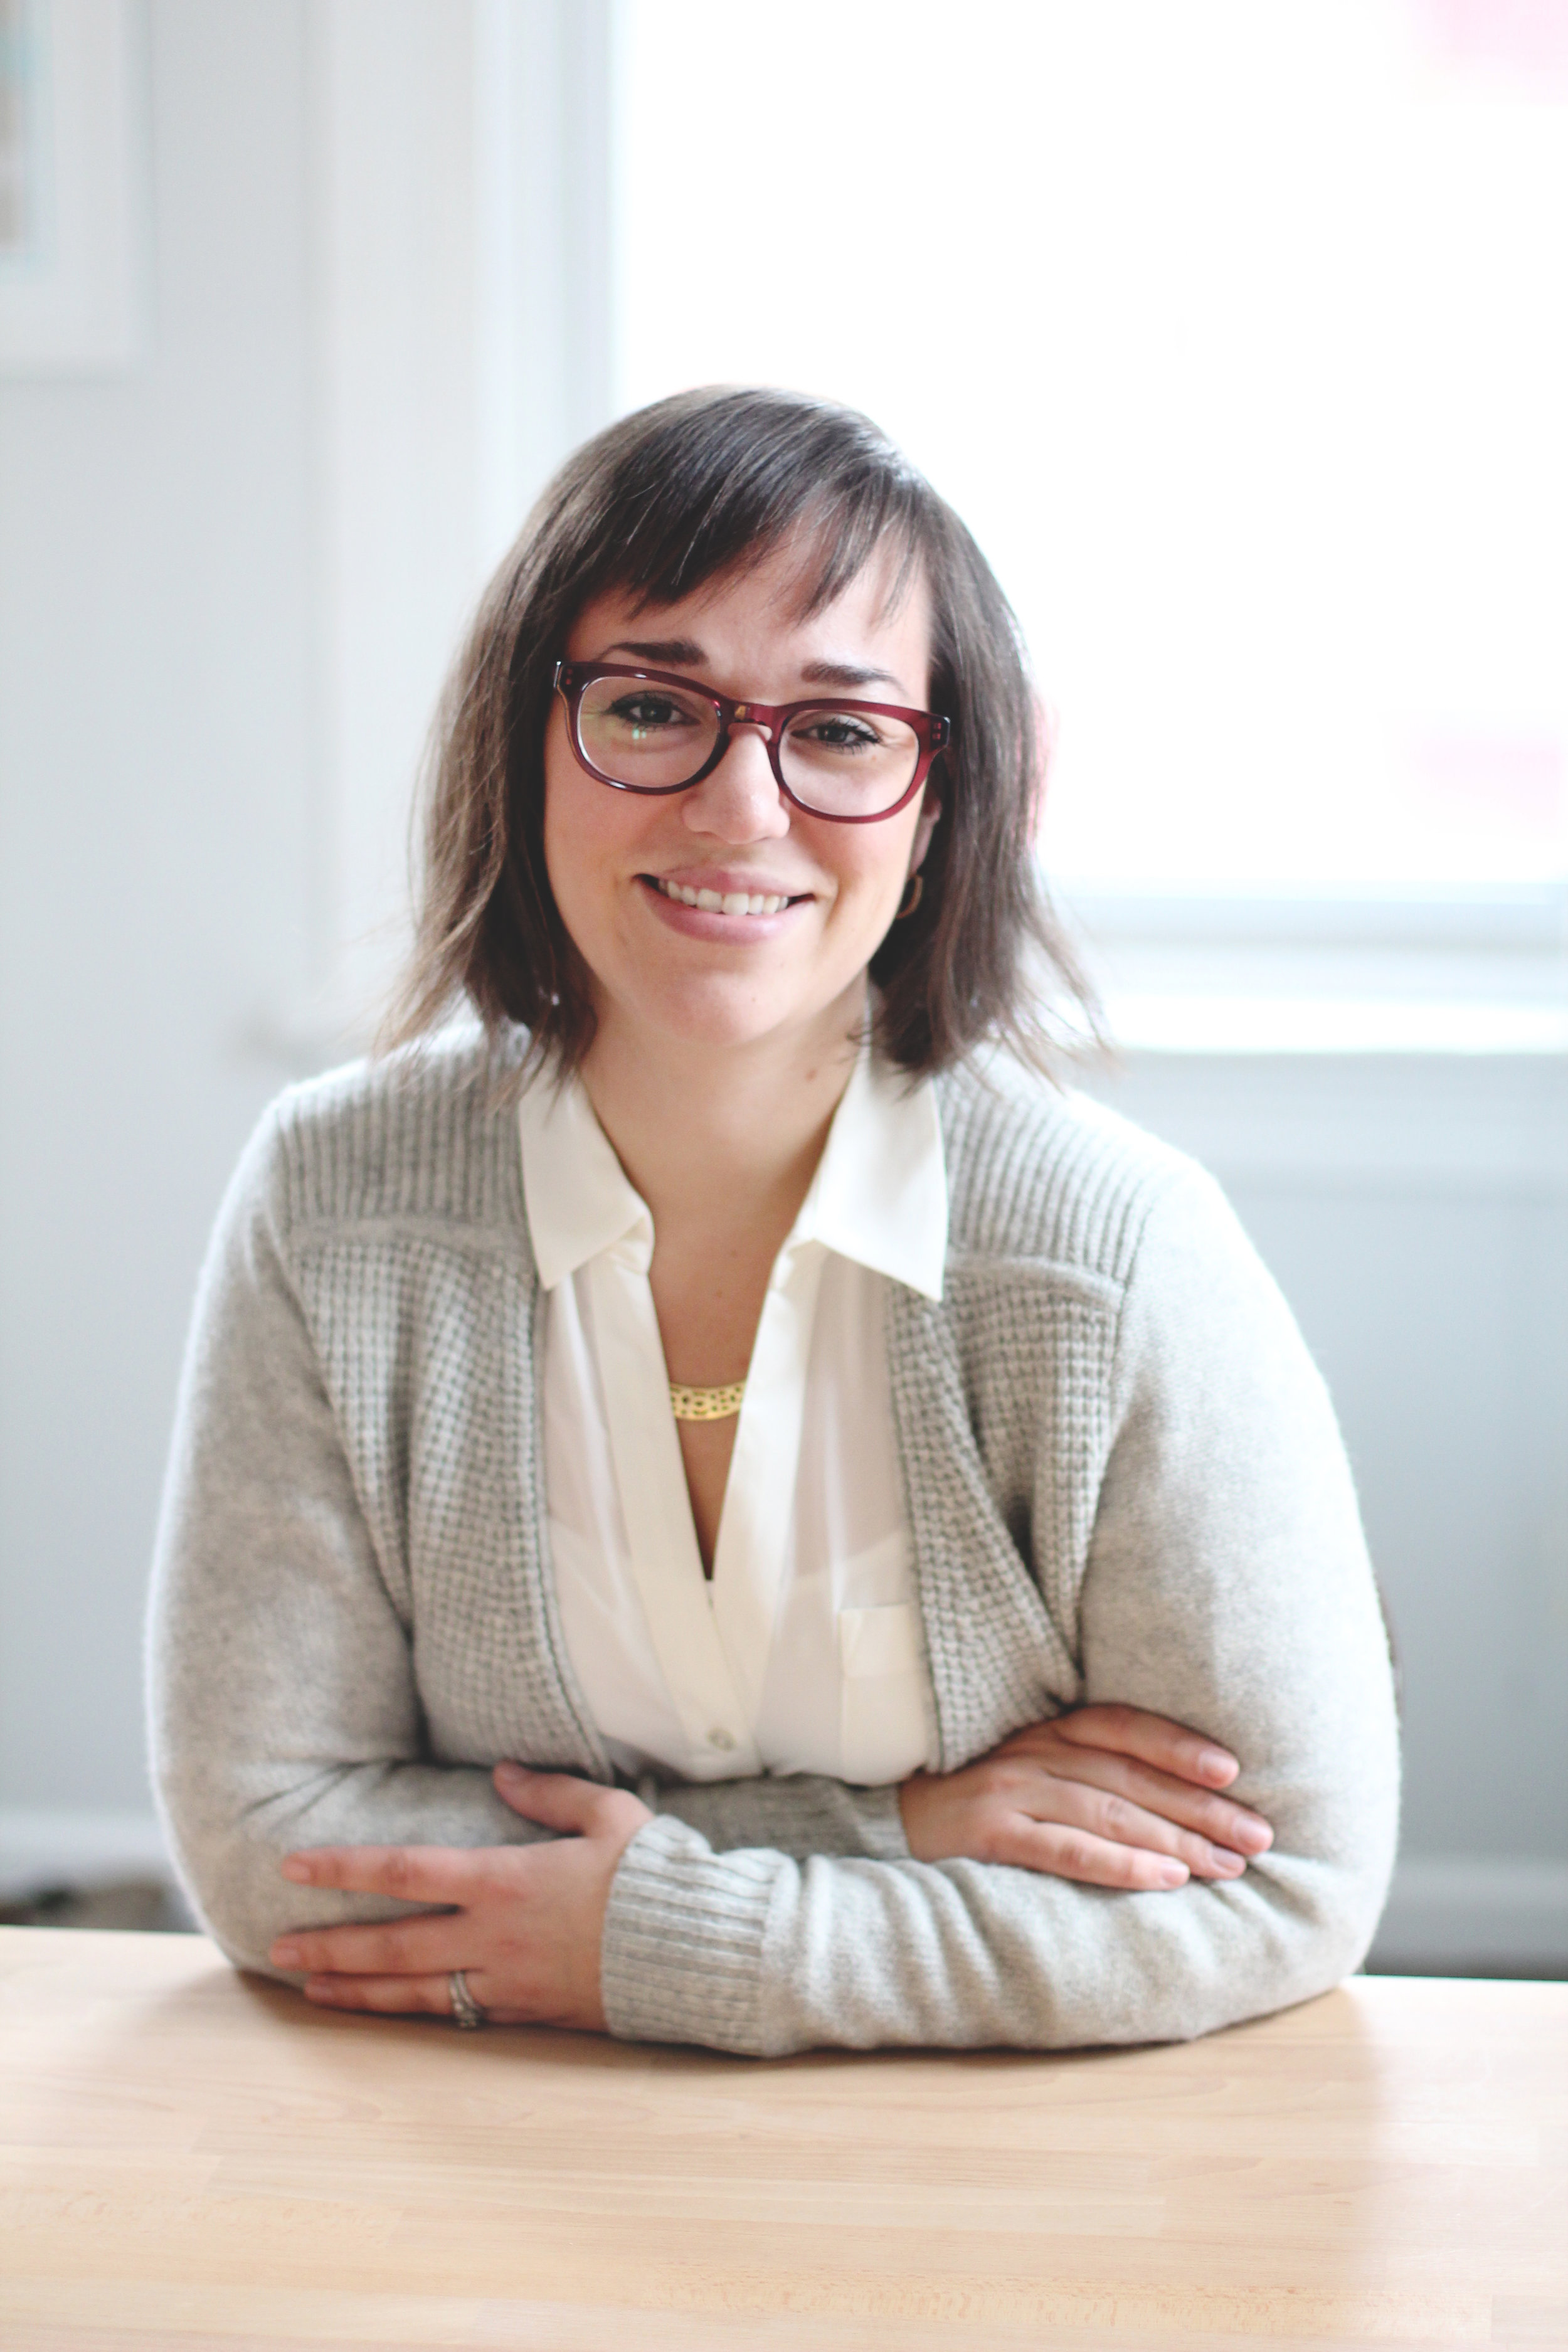 lady smiling with arms folded in front of her wearing glasses